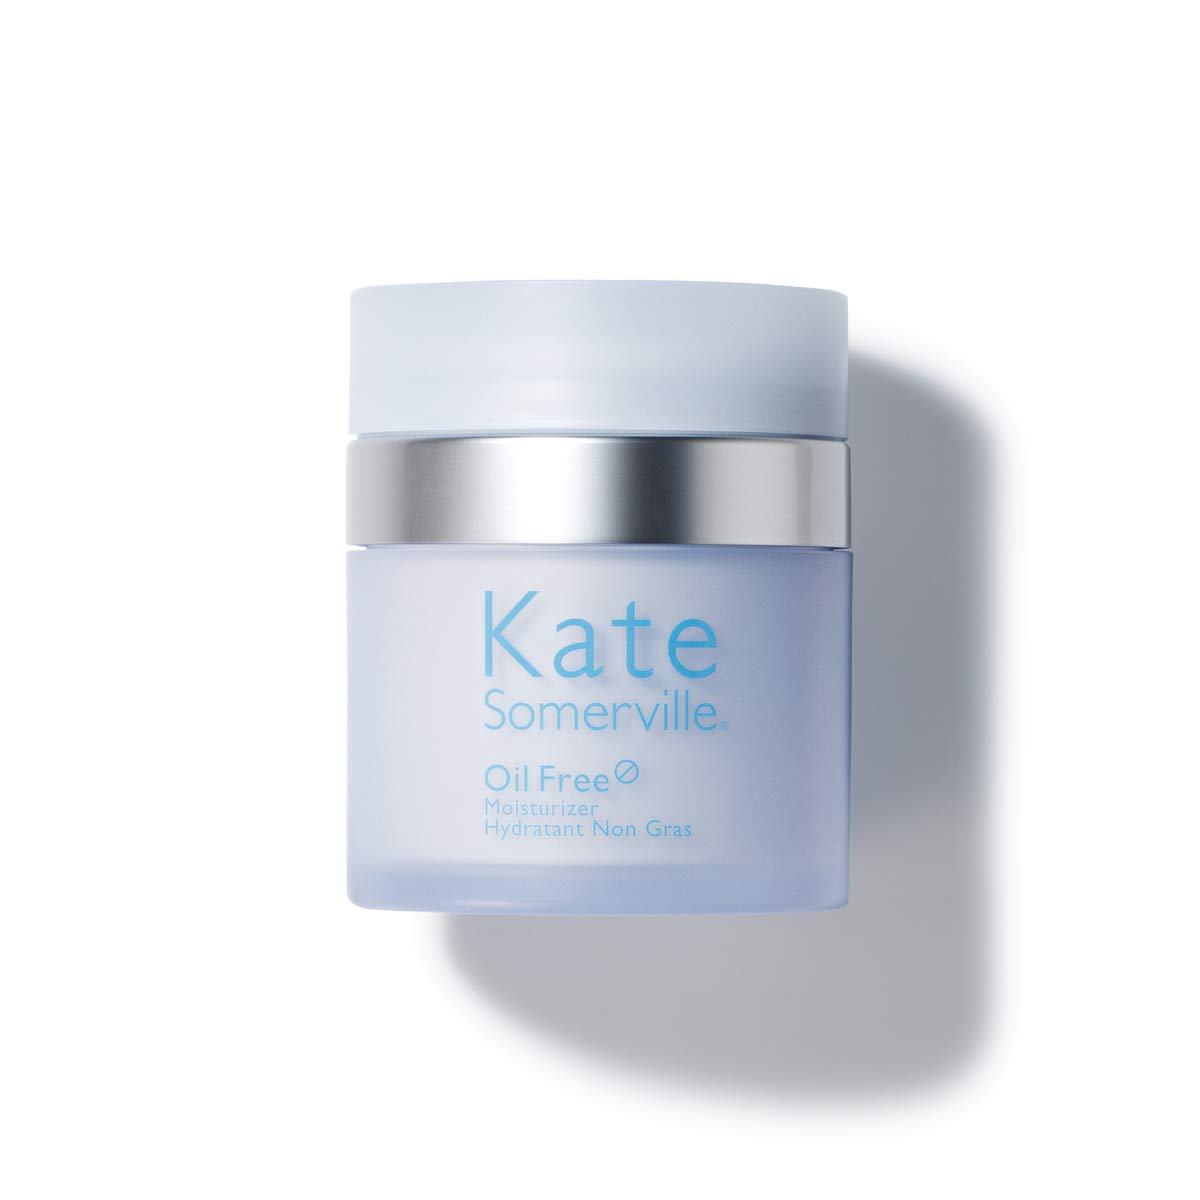 Kate Somerville Oil Free Moisturizer